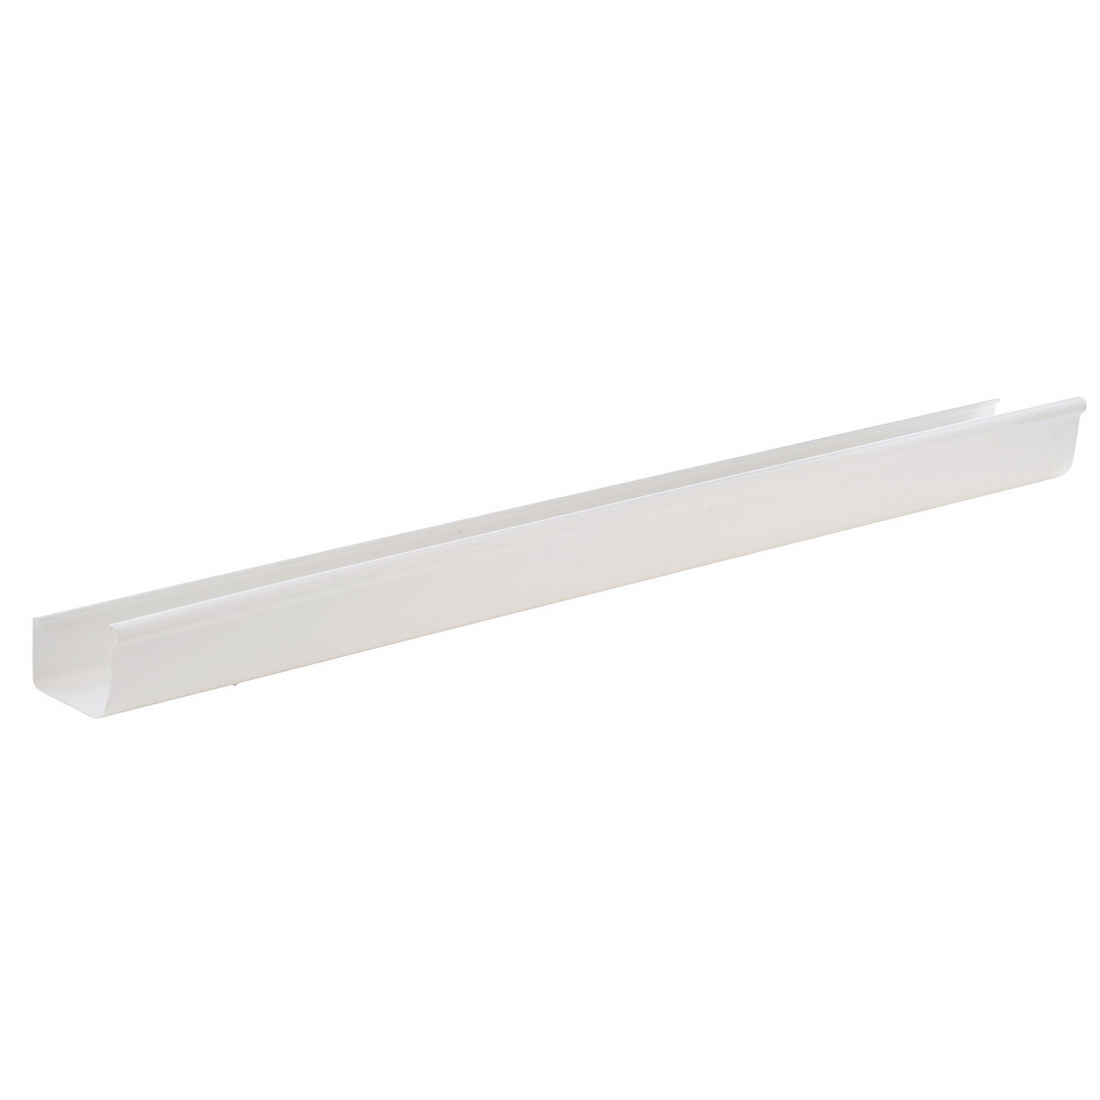 Marley Stormcold Spouting 5 m x 123 mm Unplasticised PVC White MS1.5